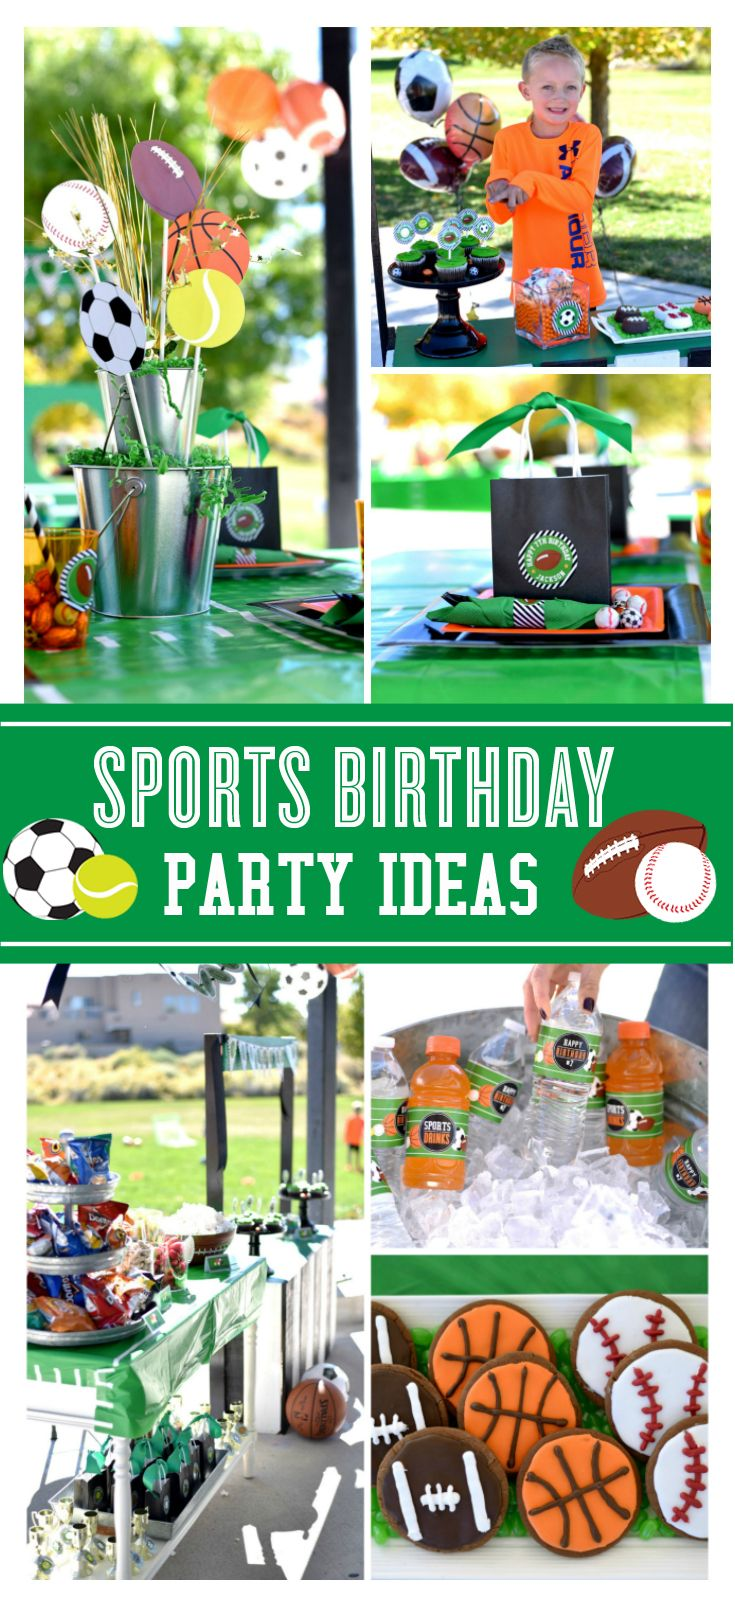 Love these Sports Birthday party ideas